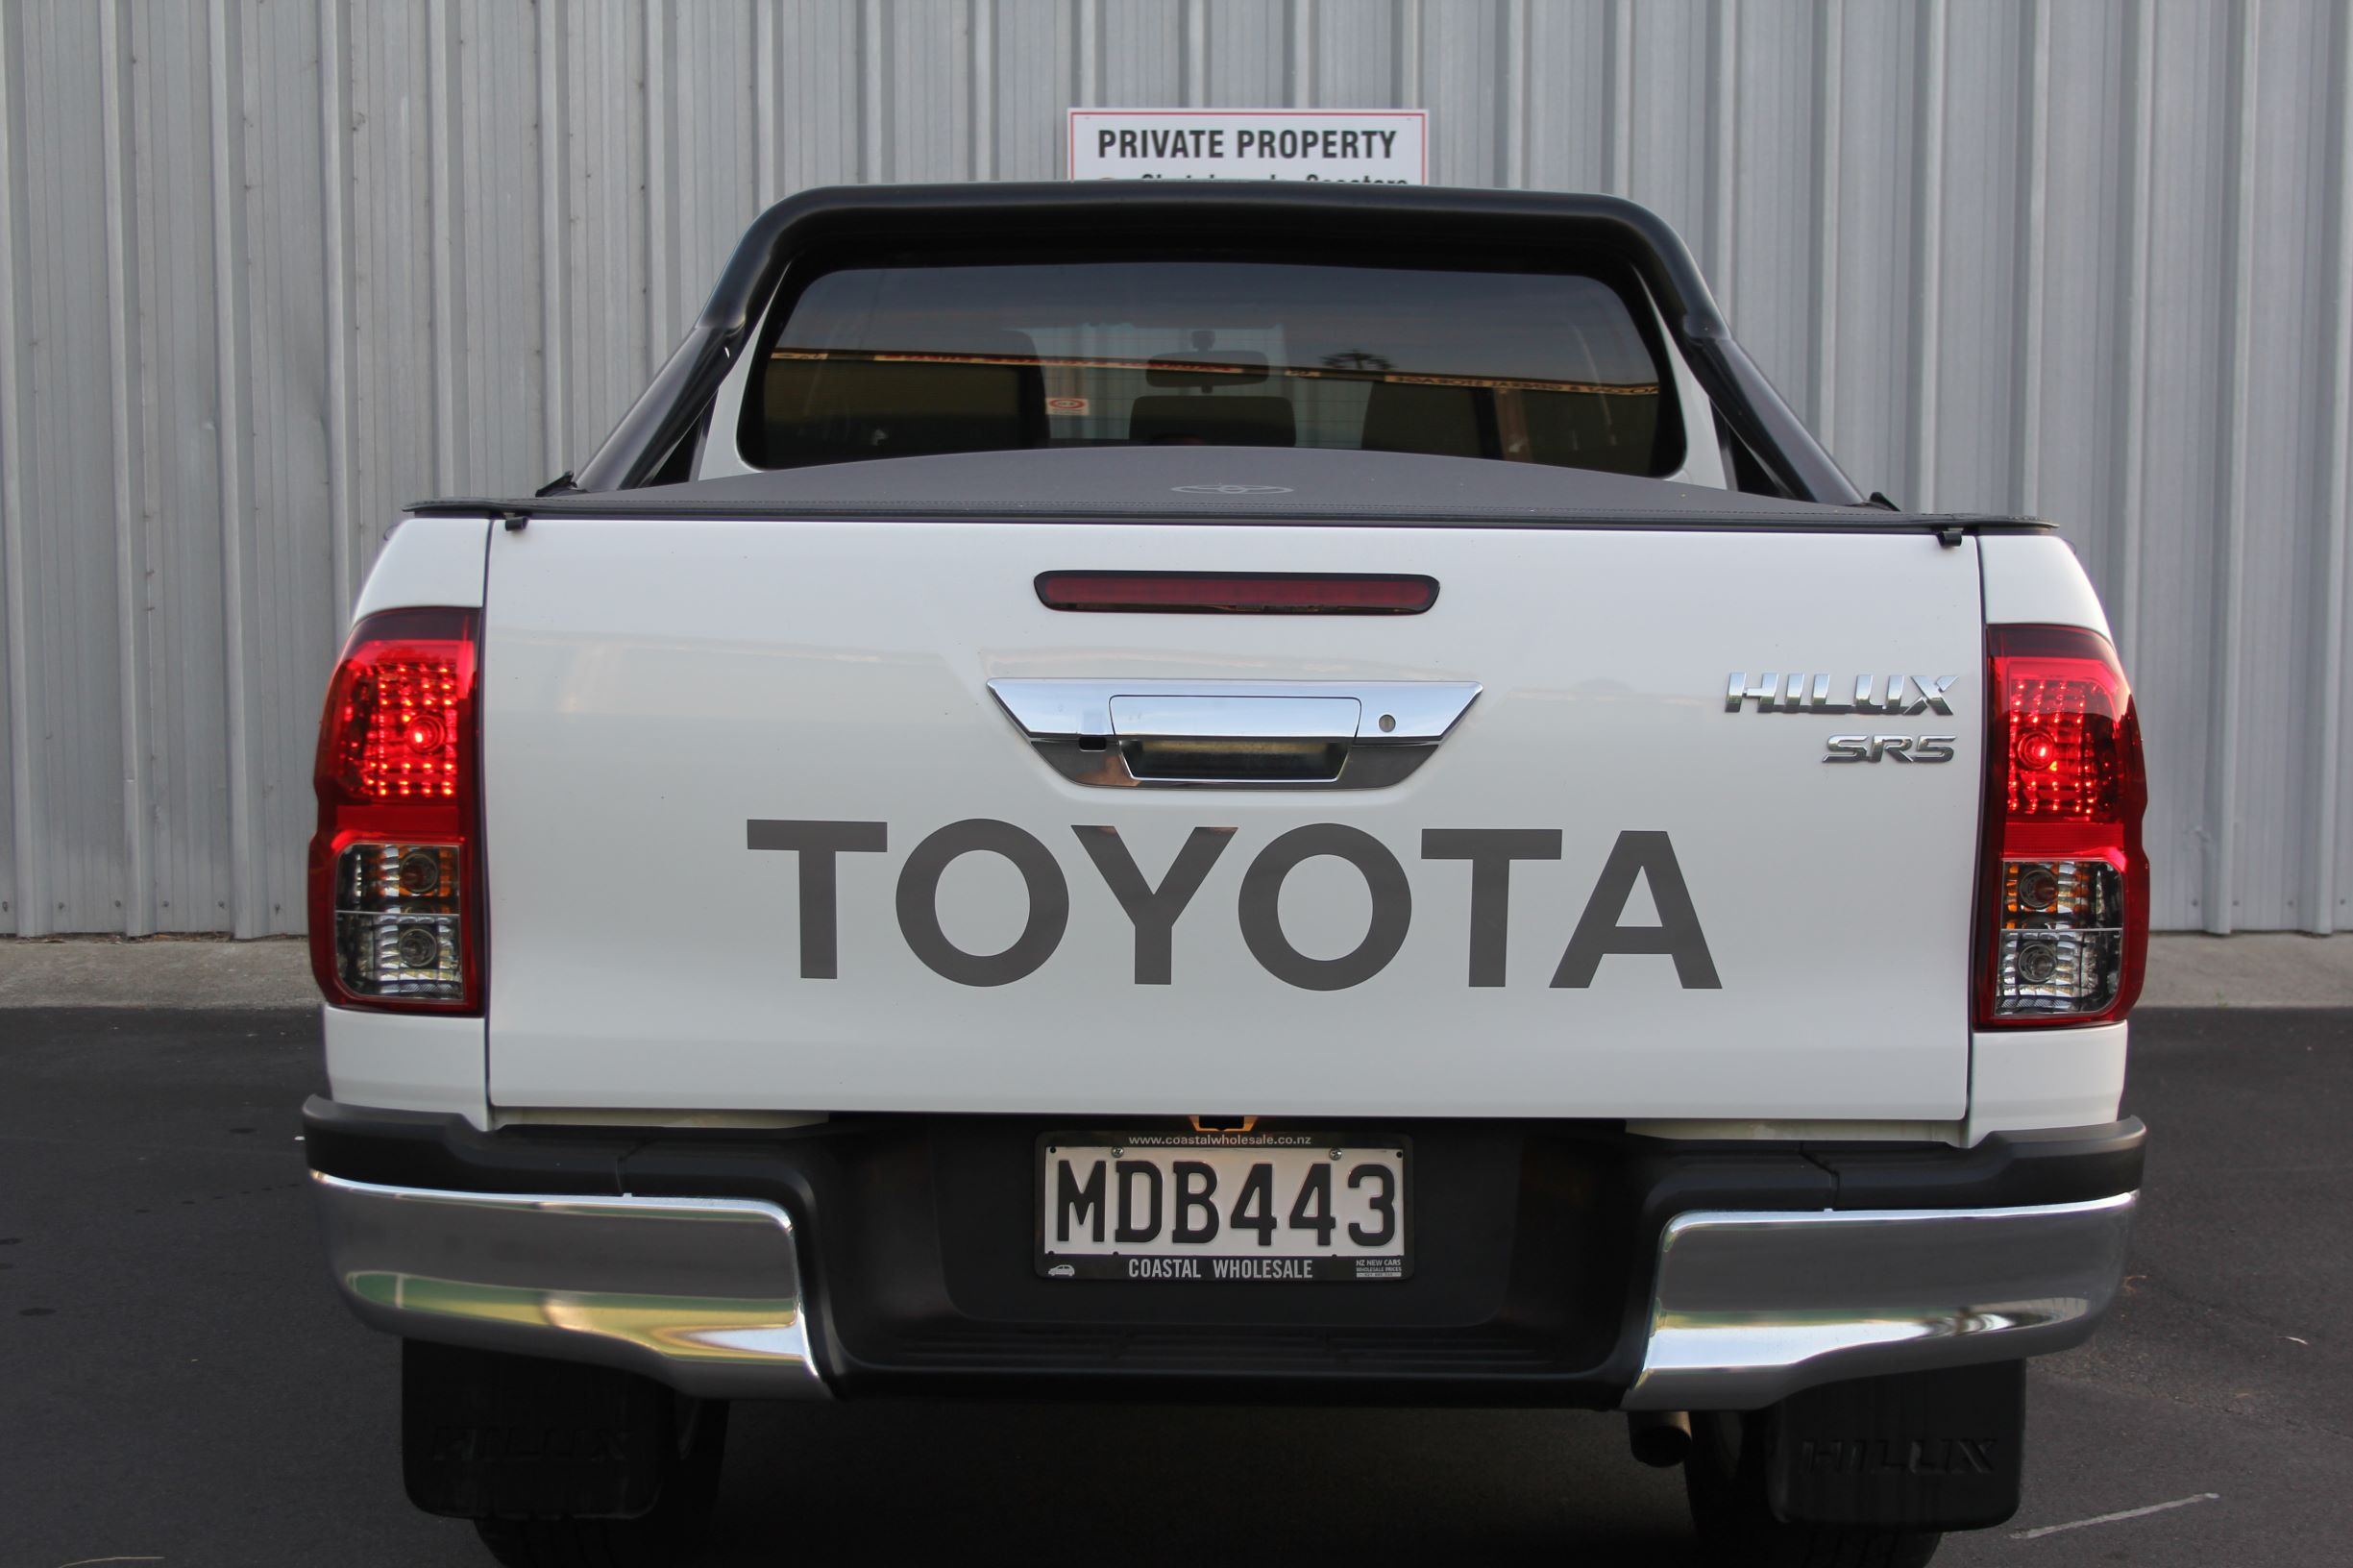 Toyota Hilux SR5 2019 for sale in Auckland